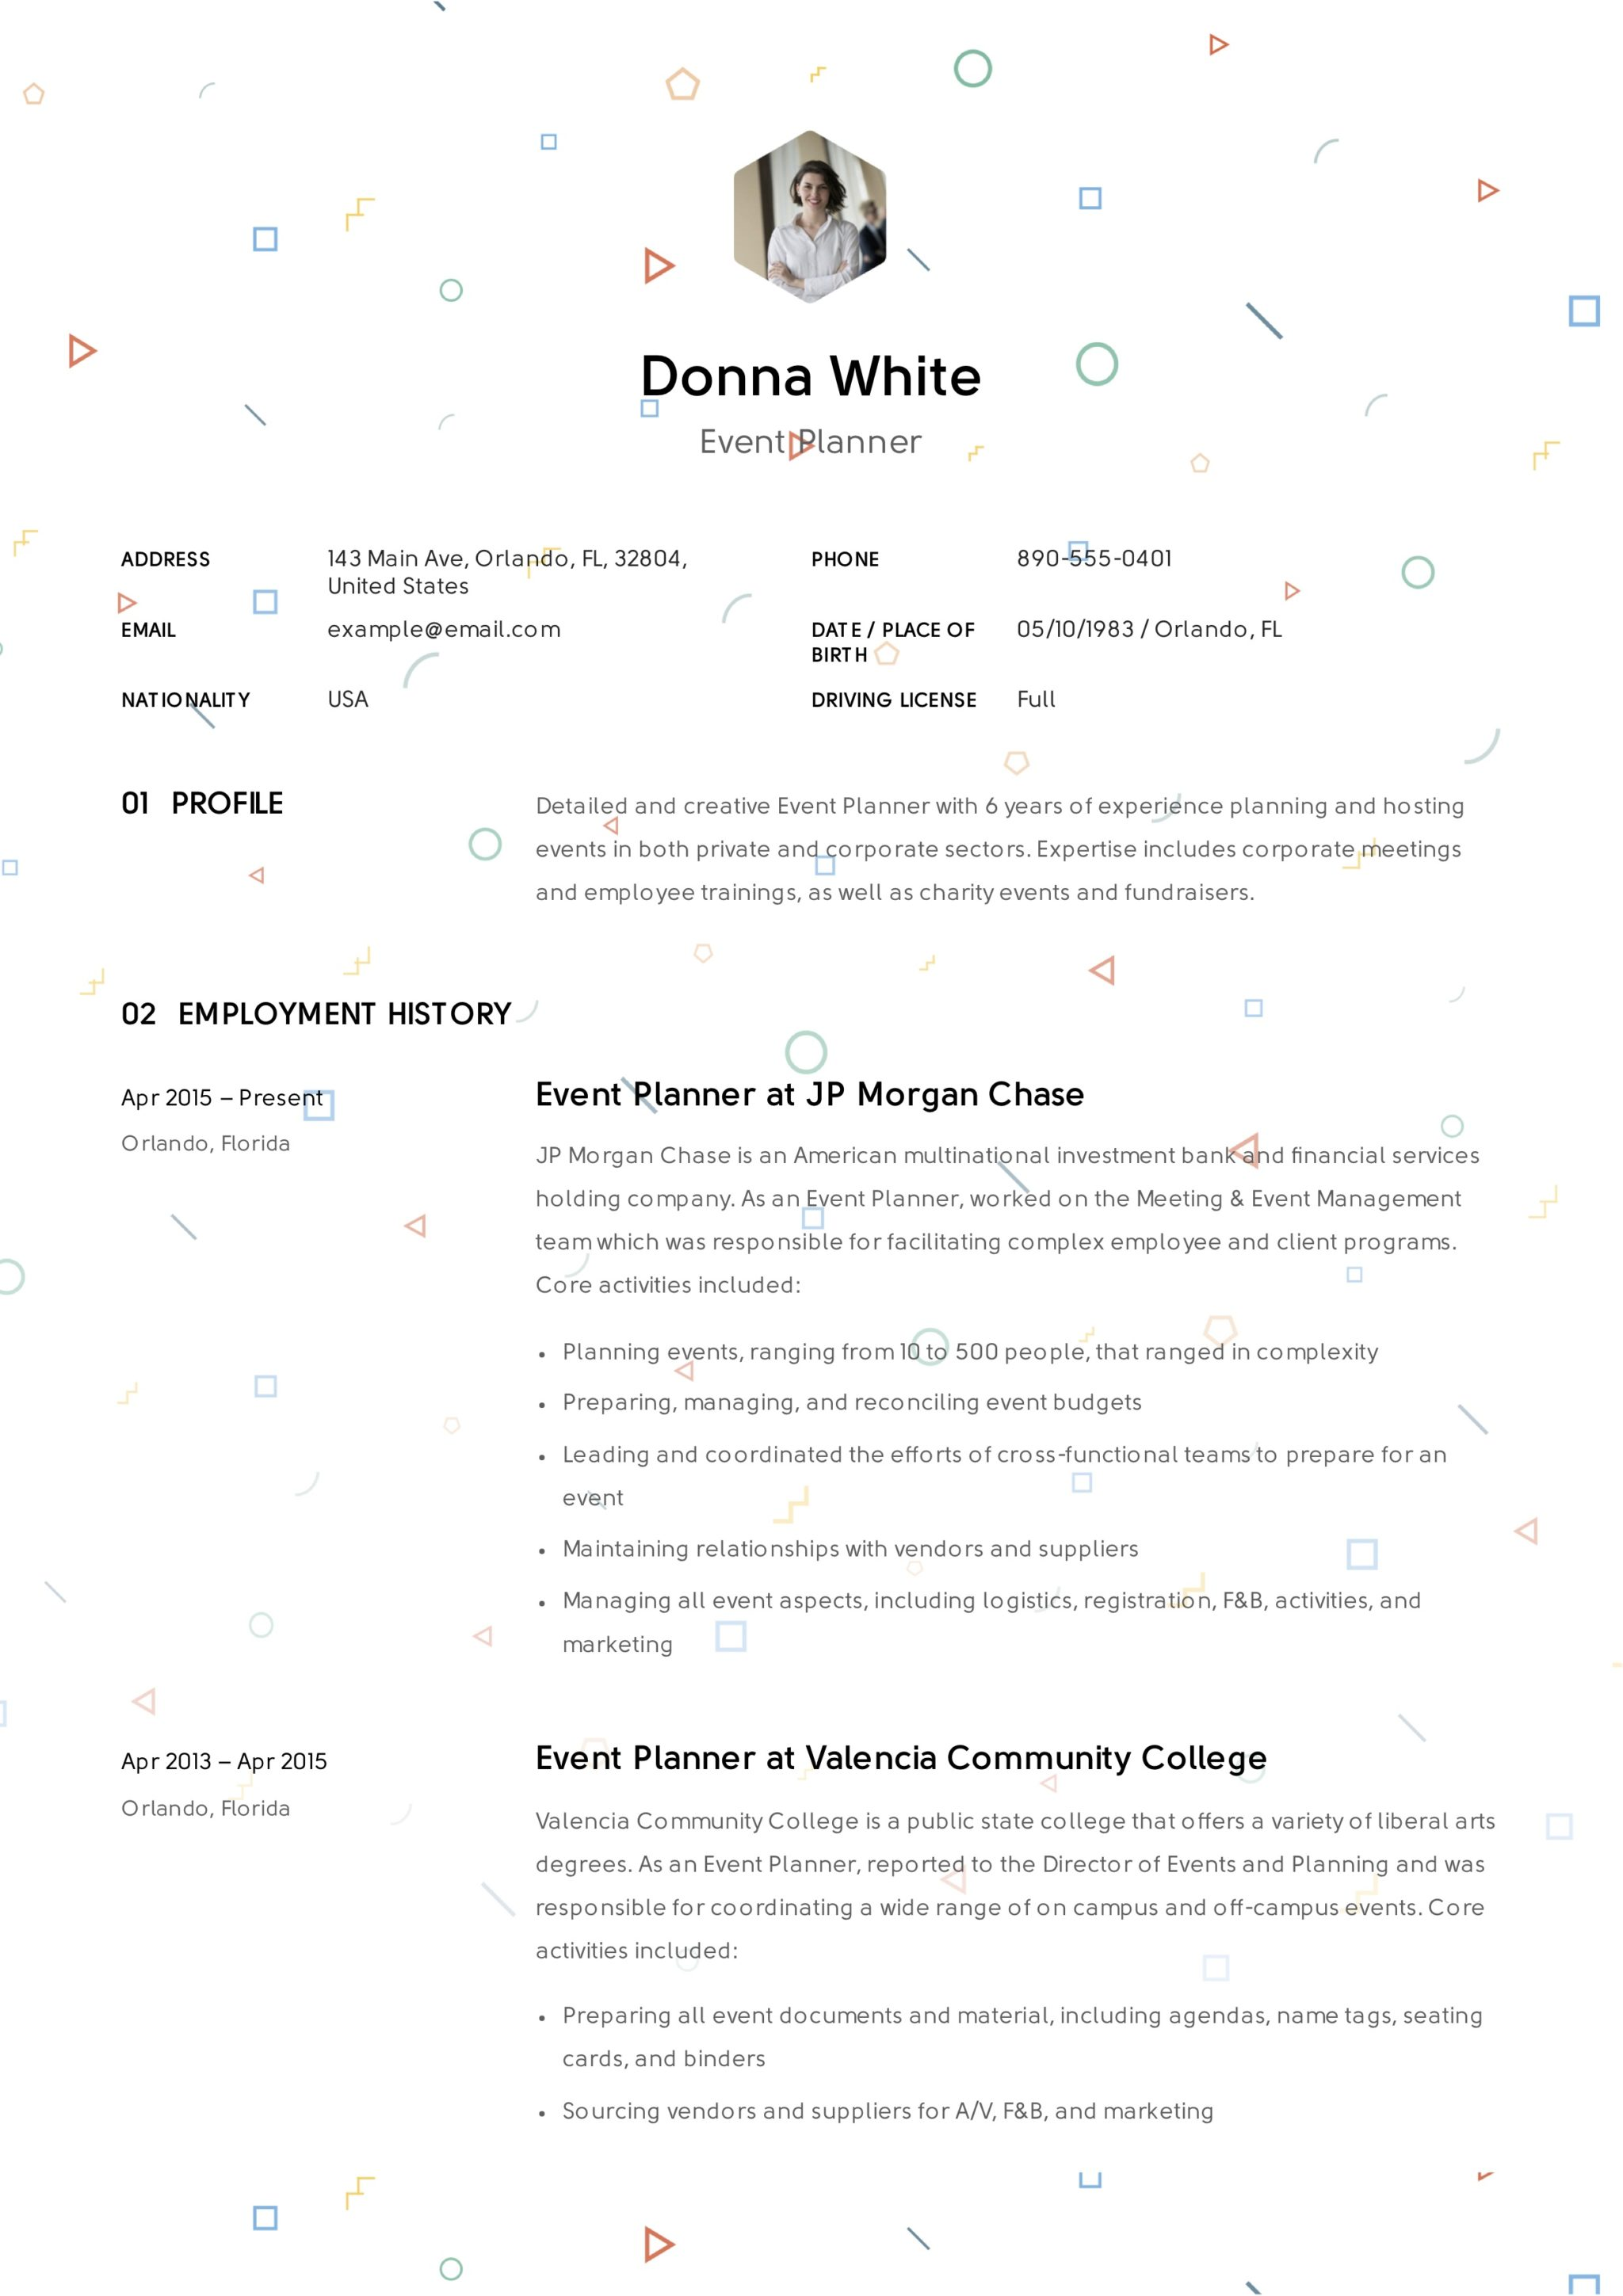 Event-Planner-Resume-Template  Curriculum Vitae Examples on bangladeshi structure, for historians, personal statement, college art instructor, sri lanka, nurse educator, usa cv resume,